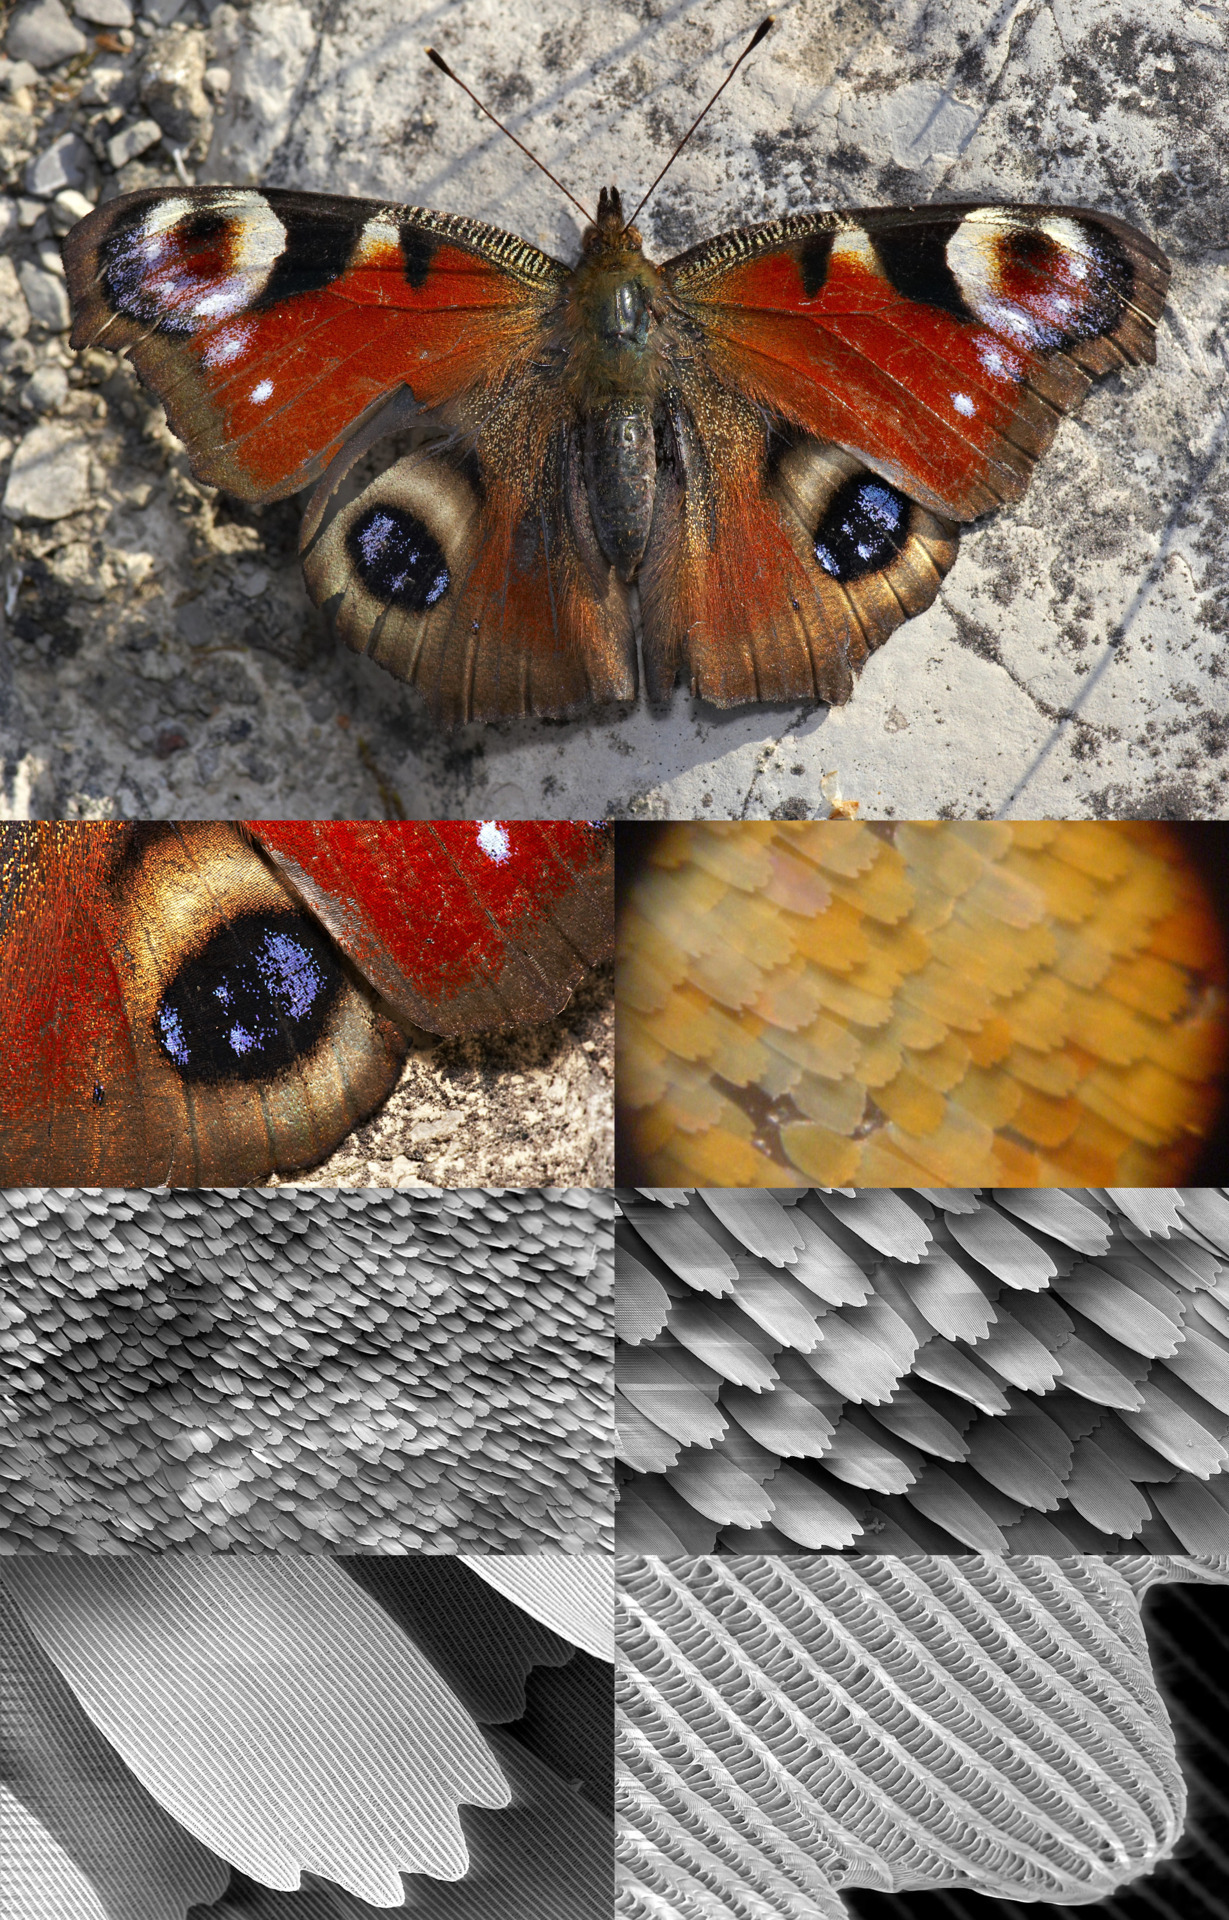 rhamphotheca:  Successive close-ups of the scales of a Peacock butterfly wing. Shown from left to right, top to bottom: (second row) a closeup of the scales of the specimen at top, high magnification view of coloured scales (different species); (third row) electron micrograph of a patch of wing (~×50 magnification), the scales close up (~×200); (last row) a single scale (×1000), microstructure of a scale (×5000). (photos: MichaD (top and second row left), Shaddack (second row right), SecretDisc (micrographs))